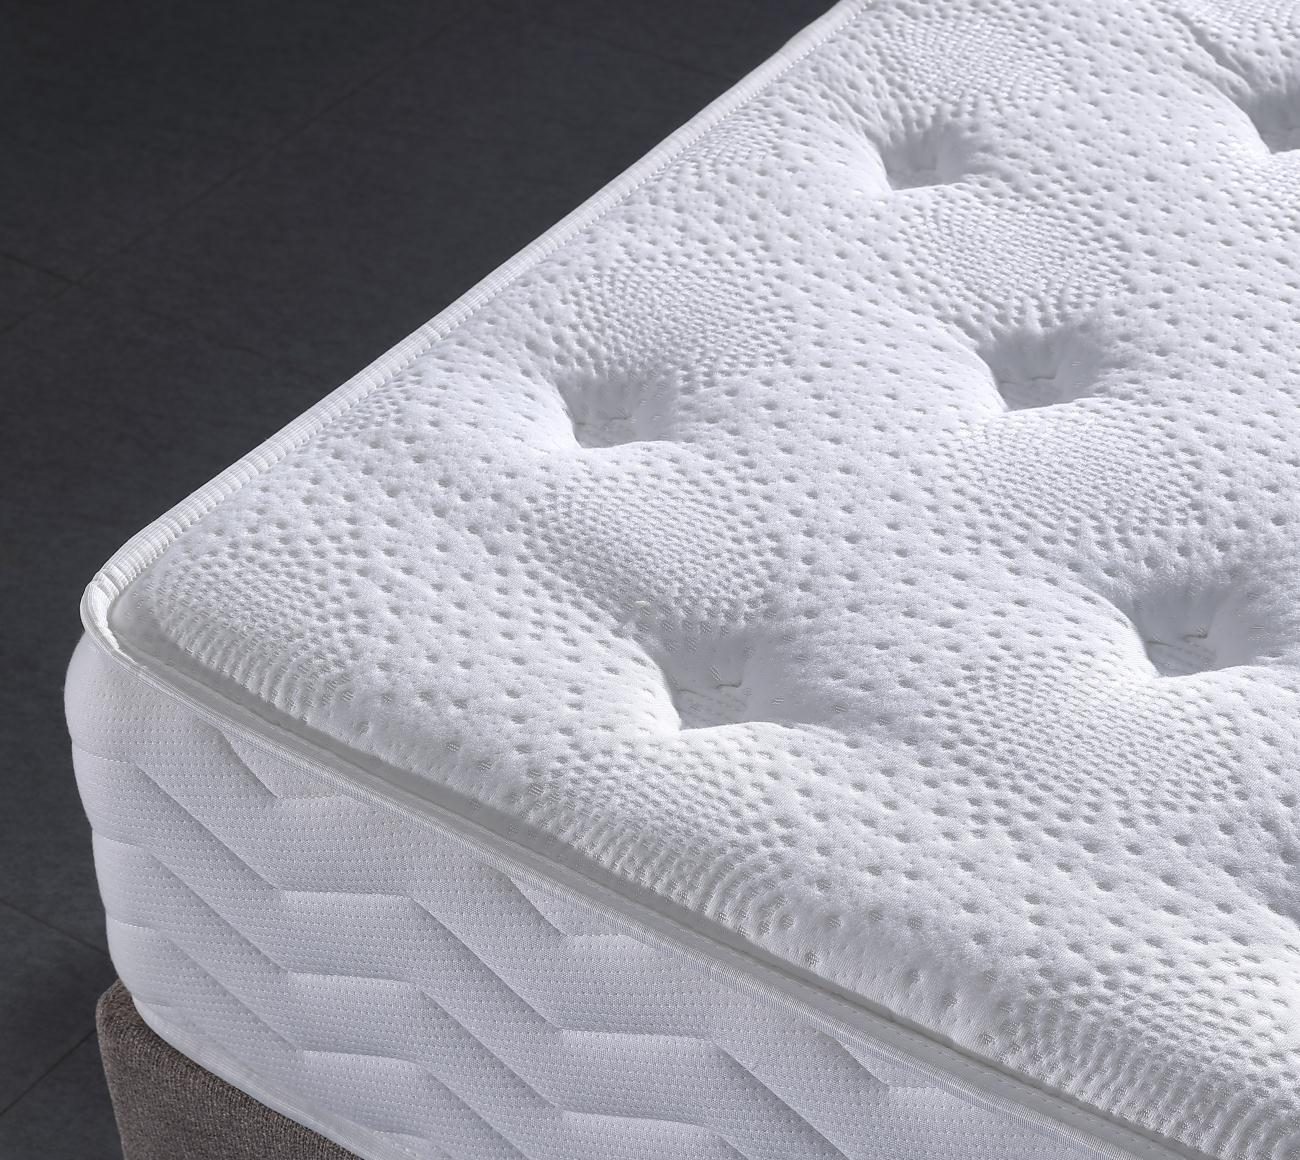 JLH-Fansace 21BA-02 | Hotel Mattress with Tight Top Design Compressed in a Pallet 24cm Height-2